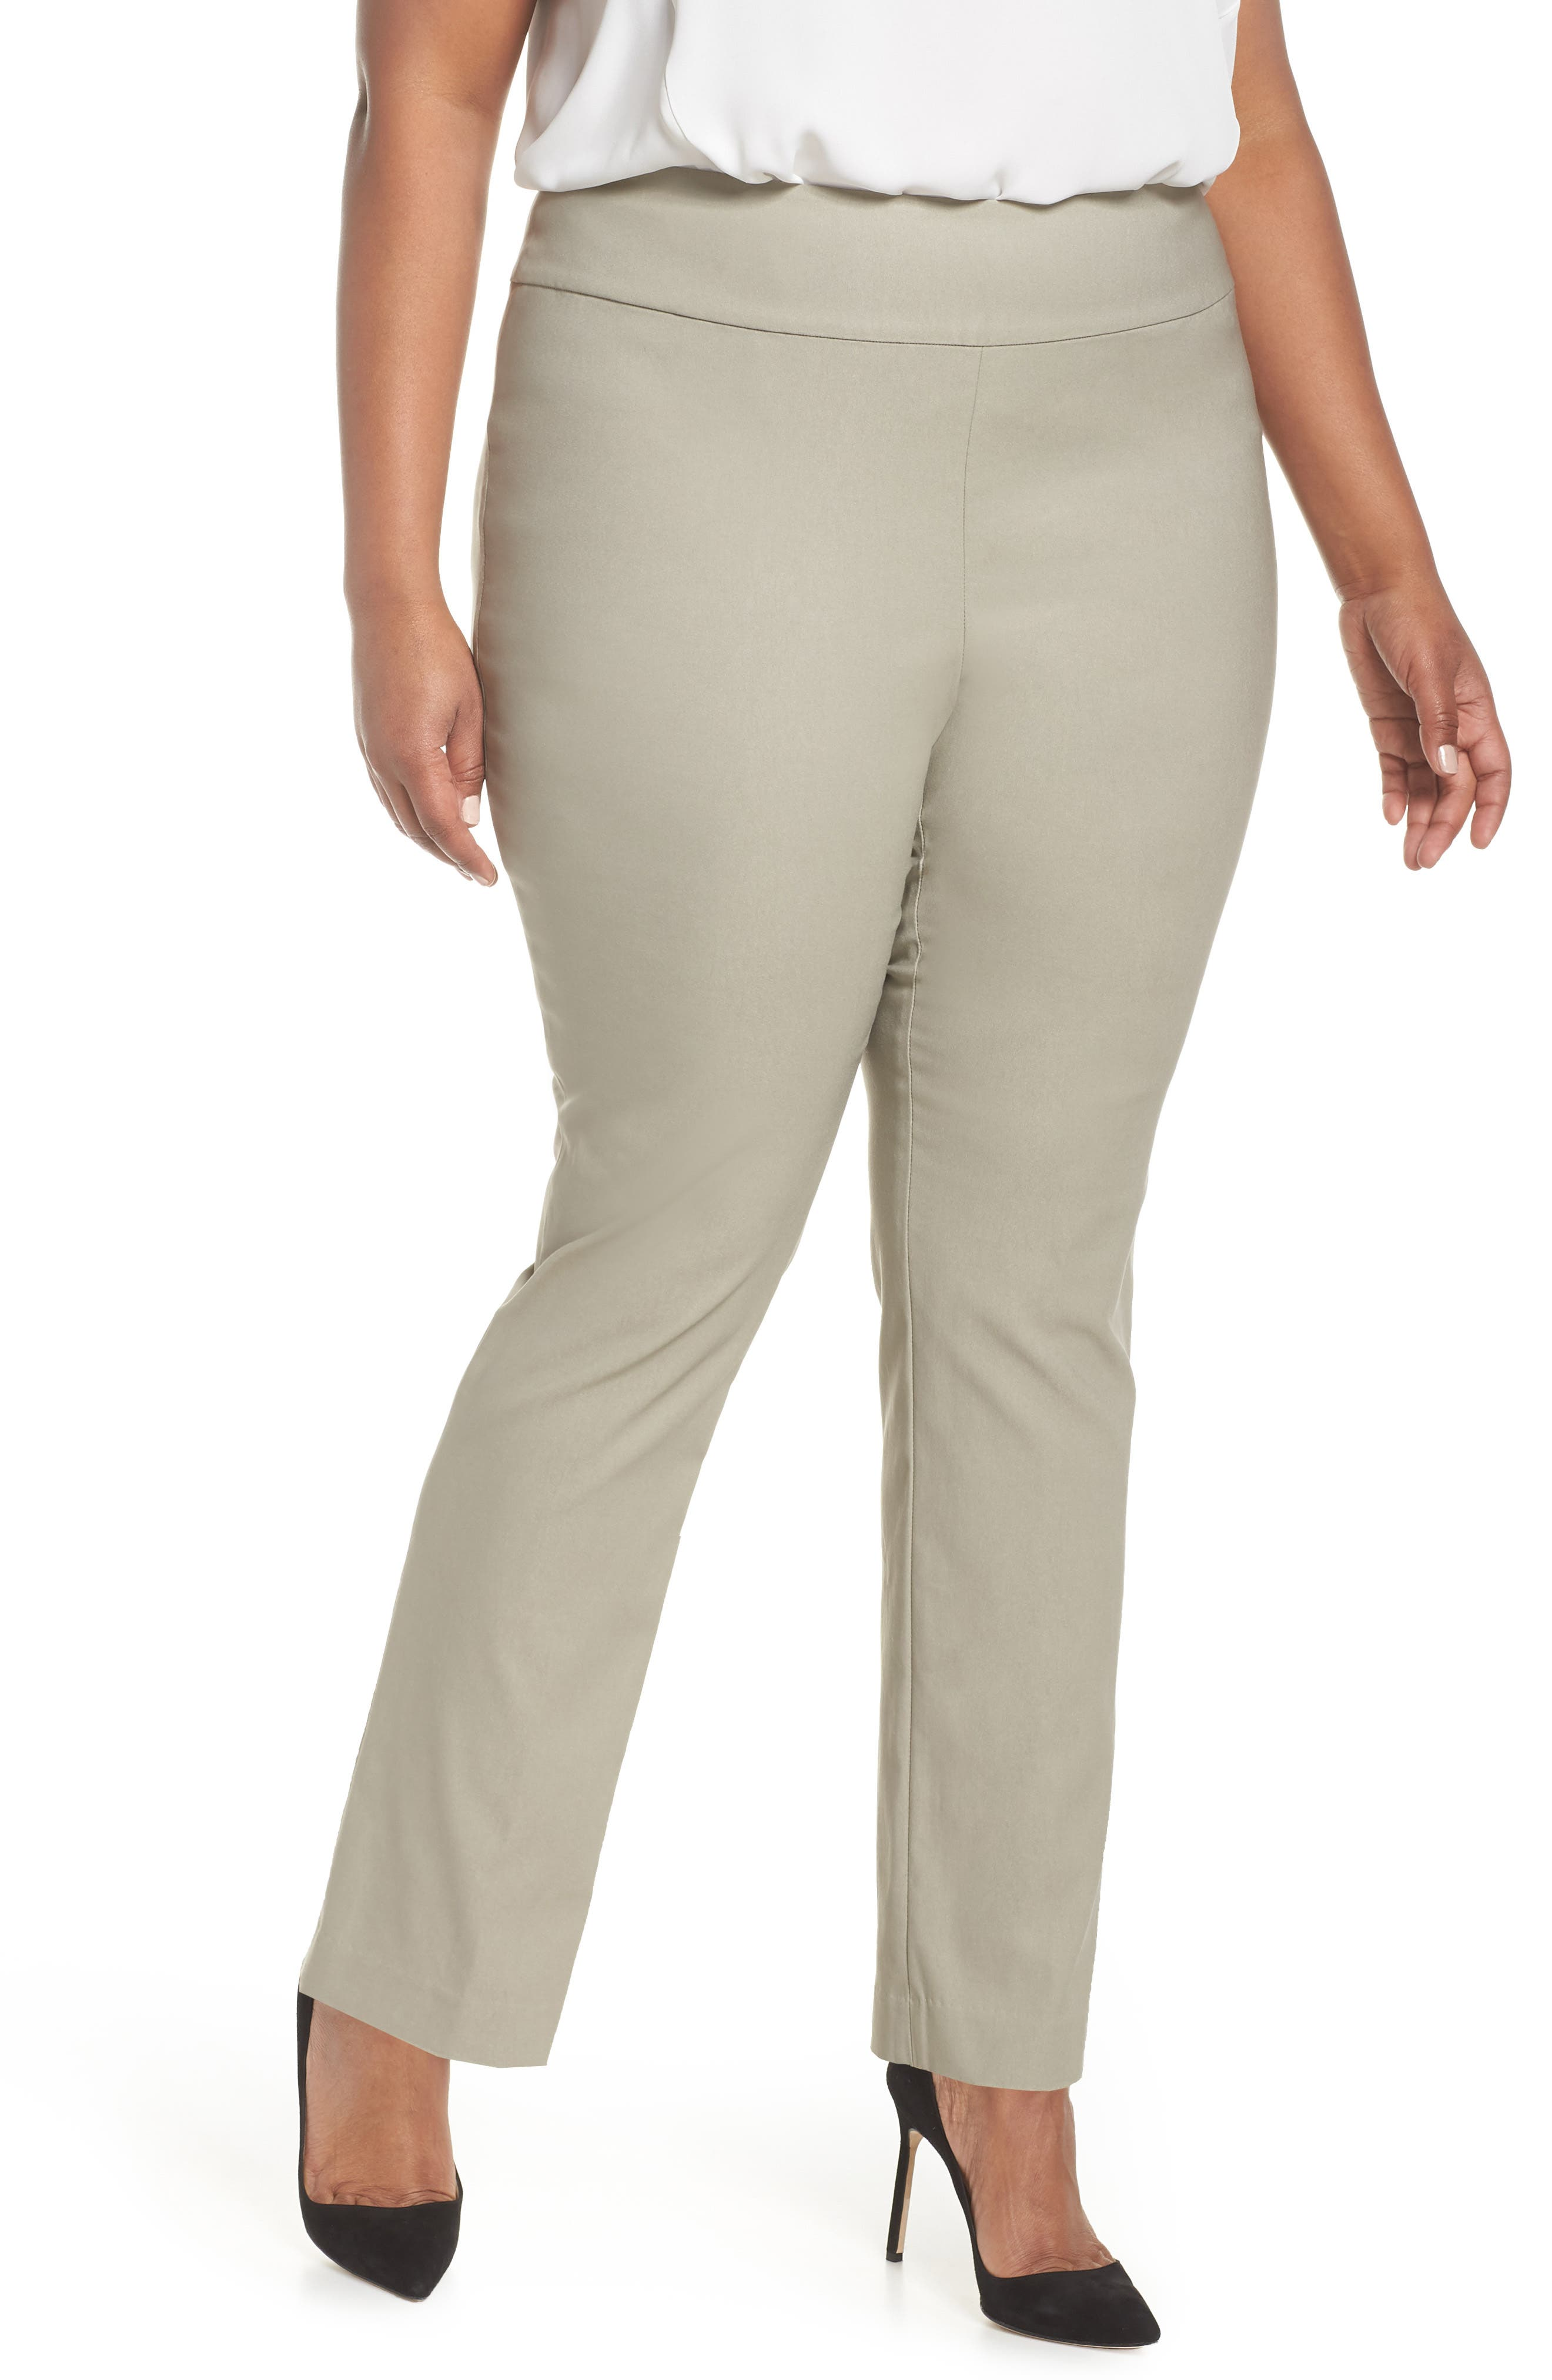 Wonderstretch Pants,                         Main,                         color, Flax